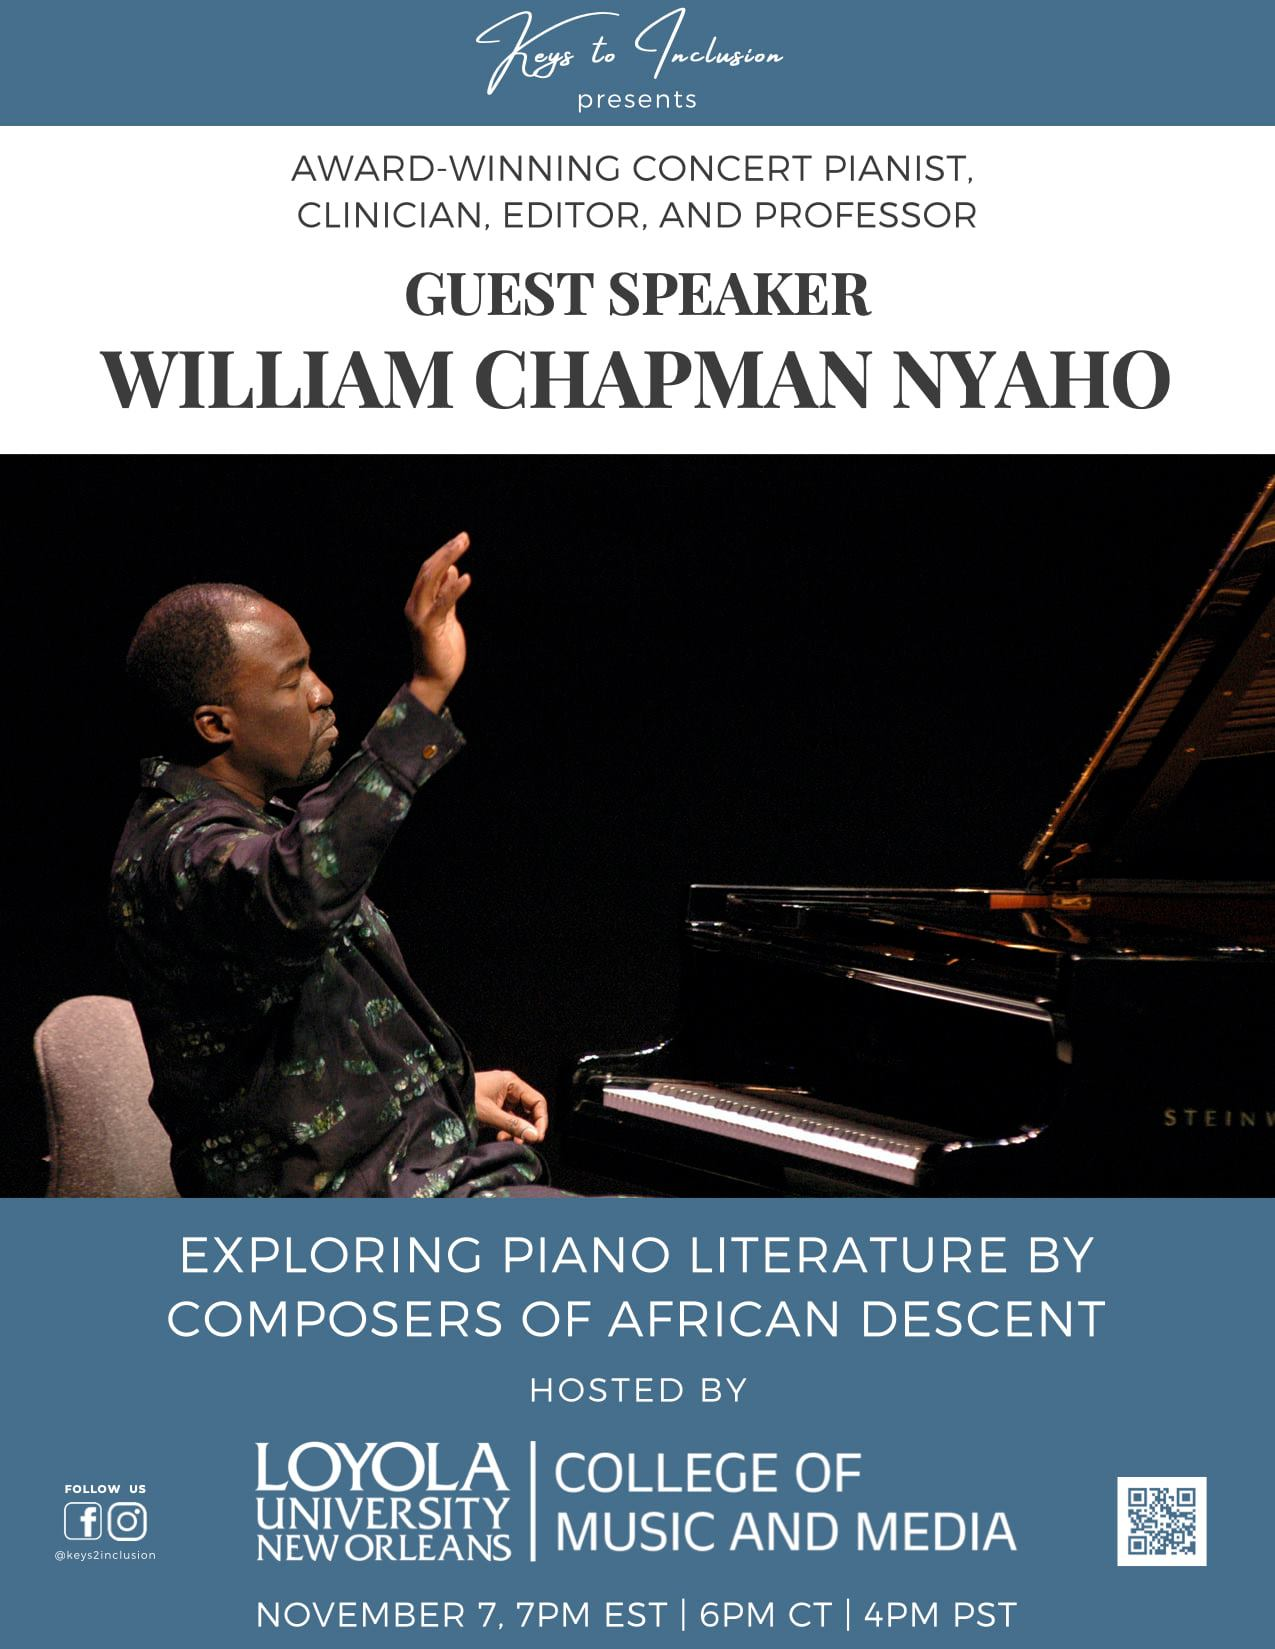 Flyer for William Chapman Nyaho: Exploring Piano Literature by Composers of African Descent